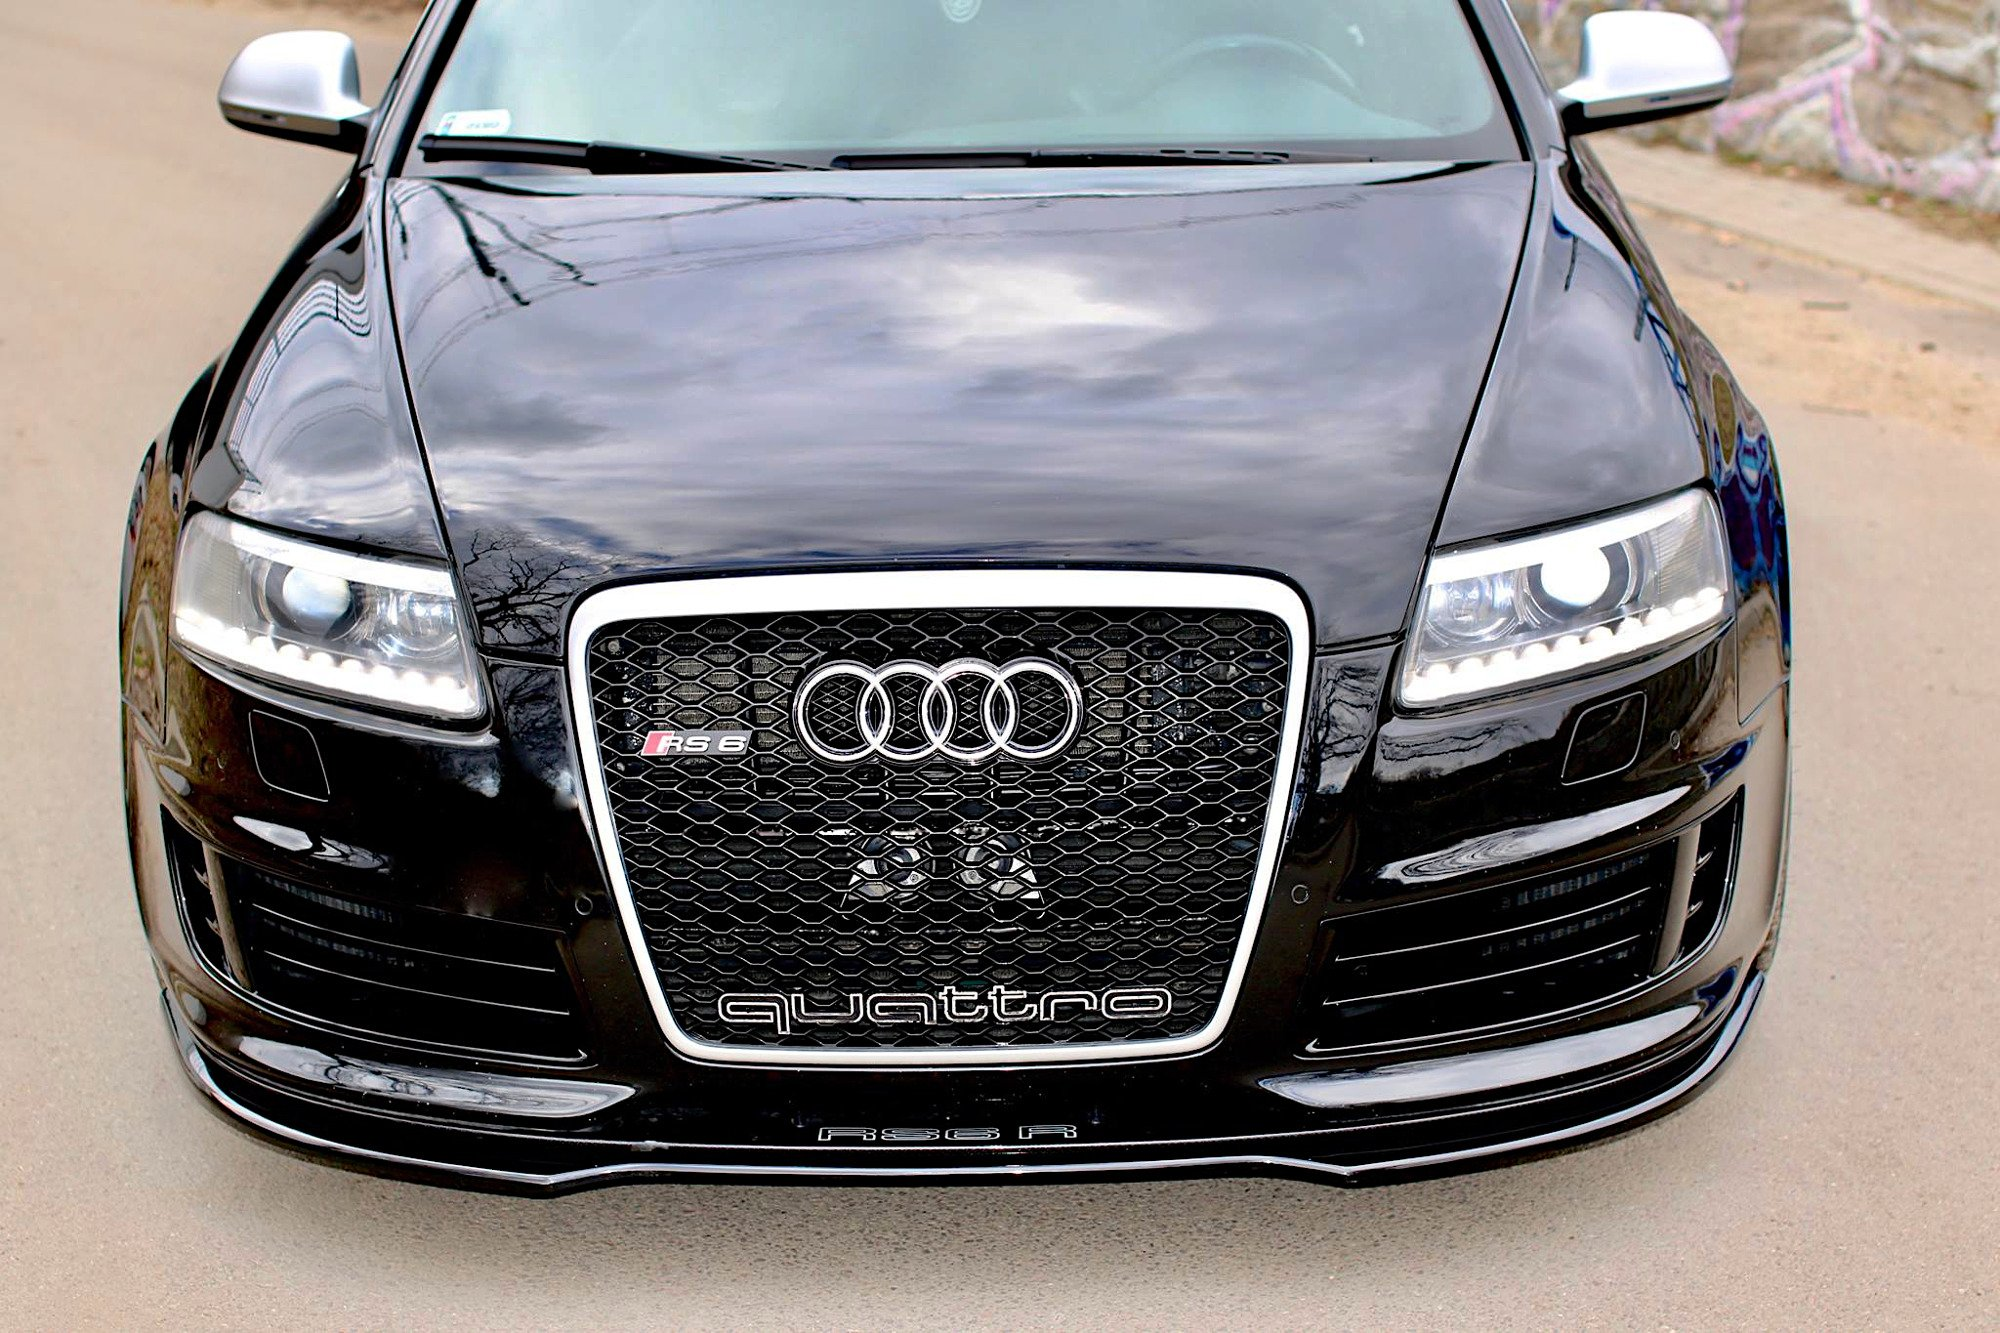 FRONT SPLITTER AUDI RS6 C6 Textured   Our Offer  Audi ...